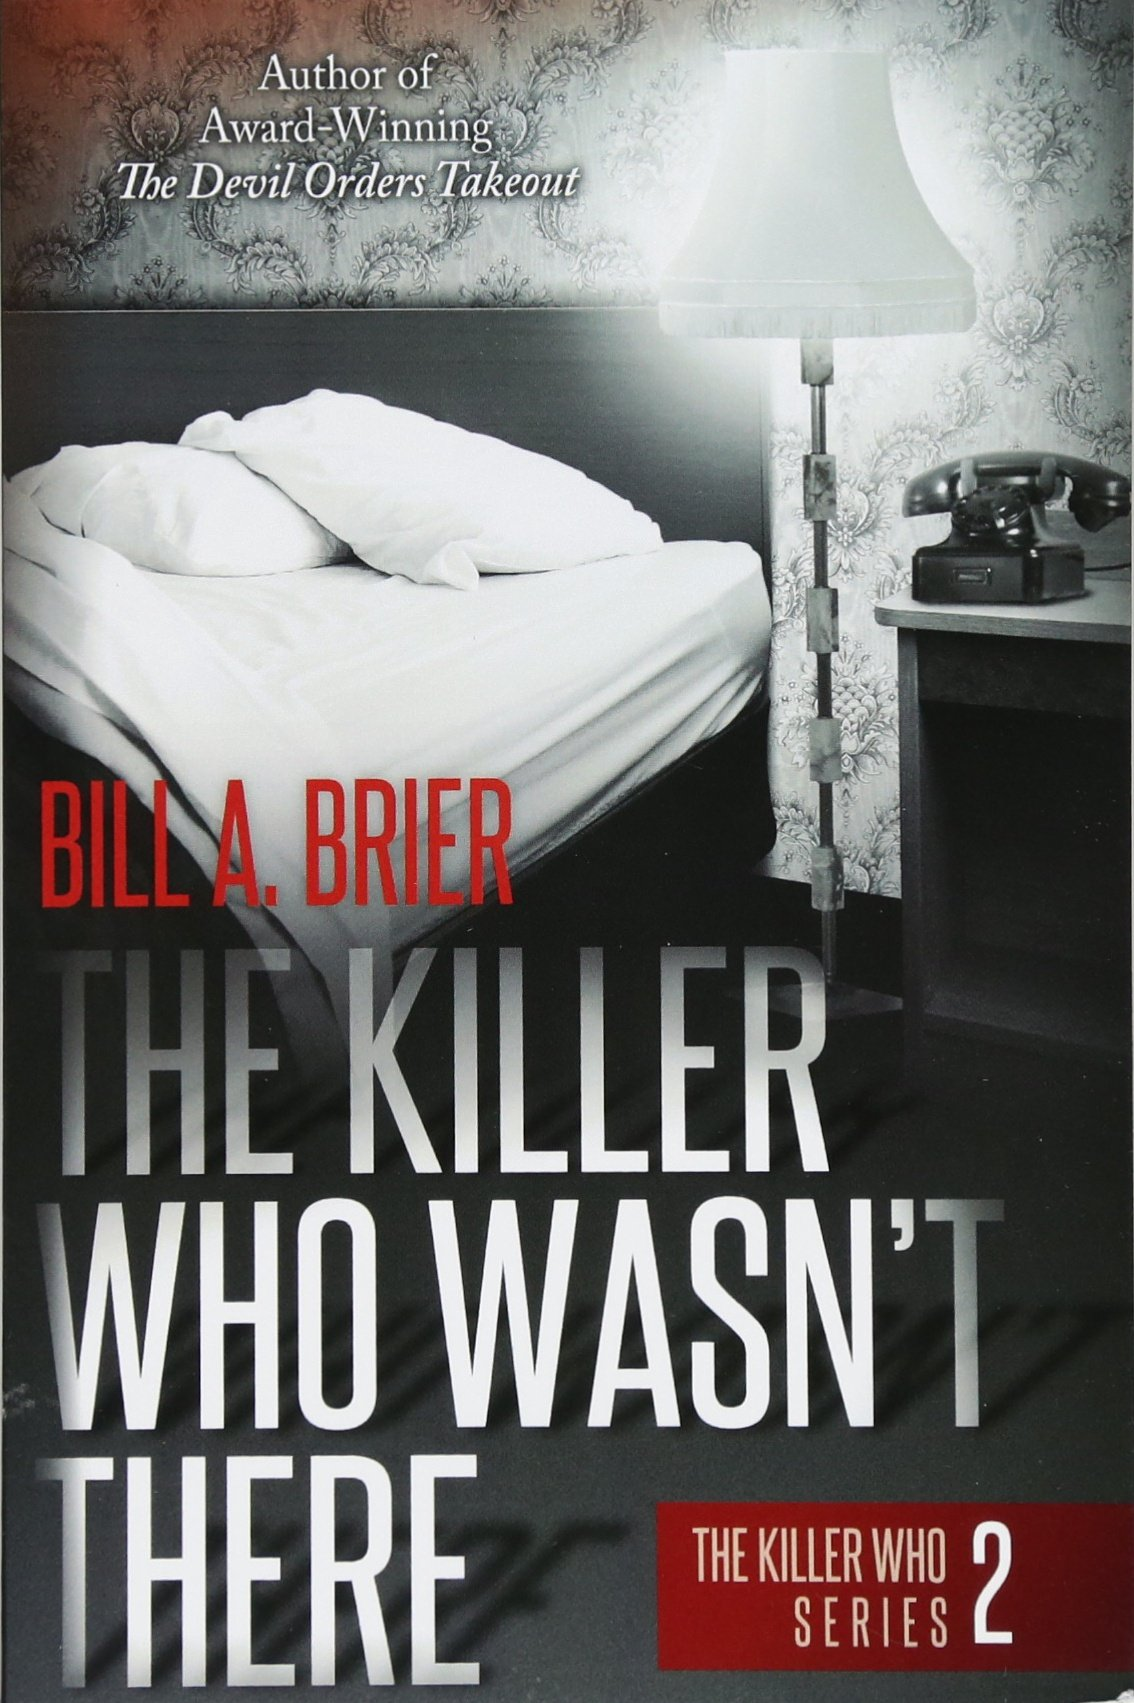 Read Online The Killer Who Wasn't There: The Killer Who Series Book 2 PDF ePub book